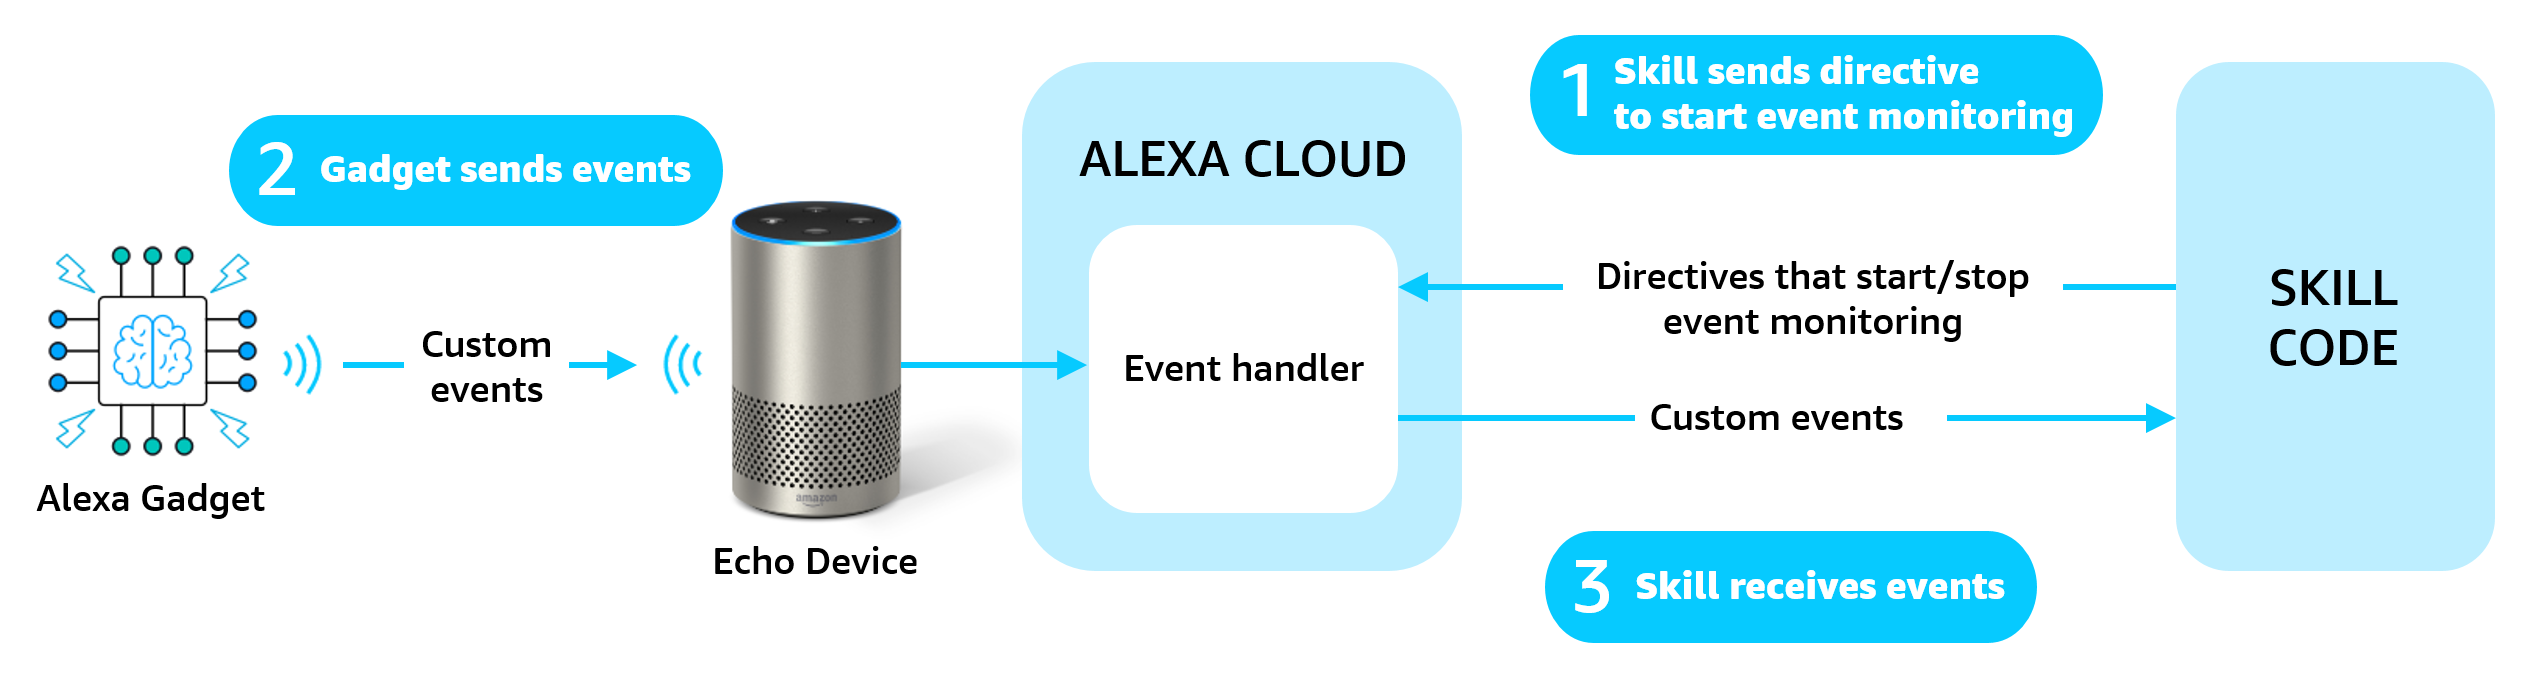 Sending a custom event from an Alexa gadget to a skill.